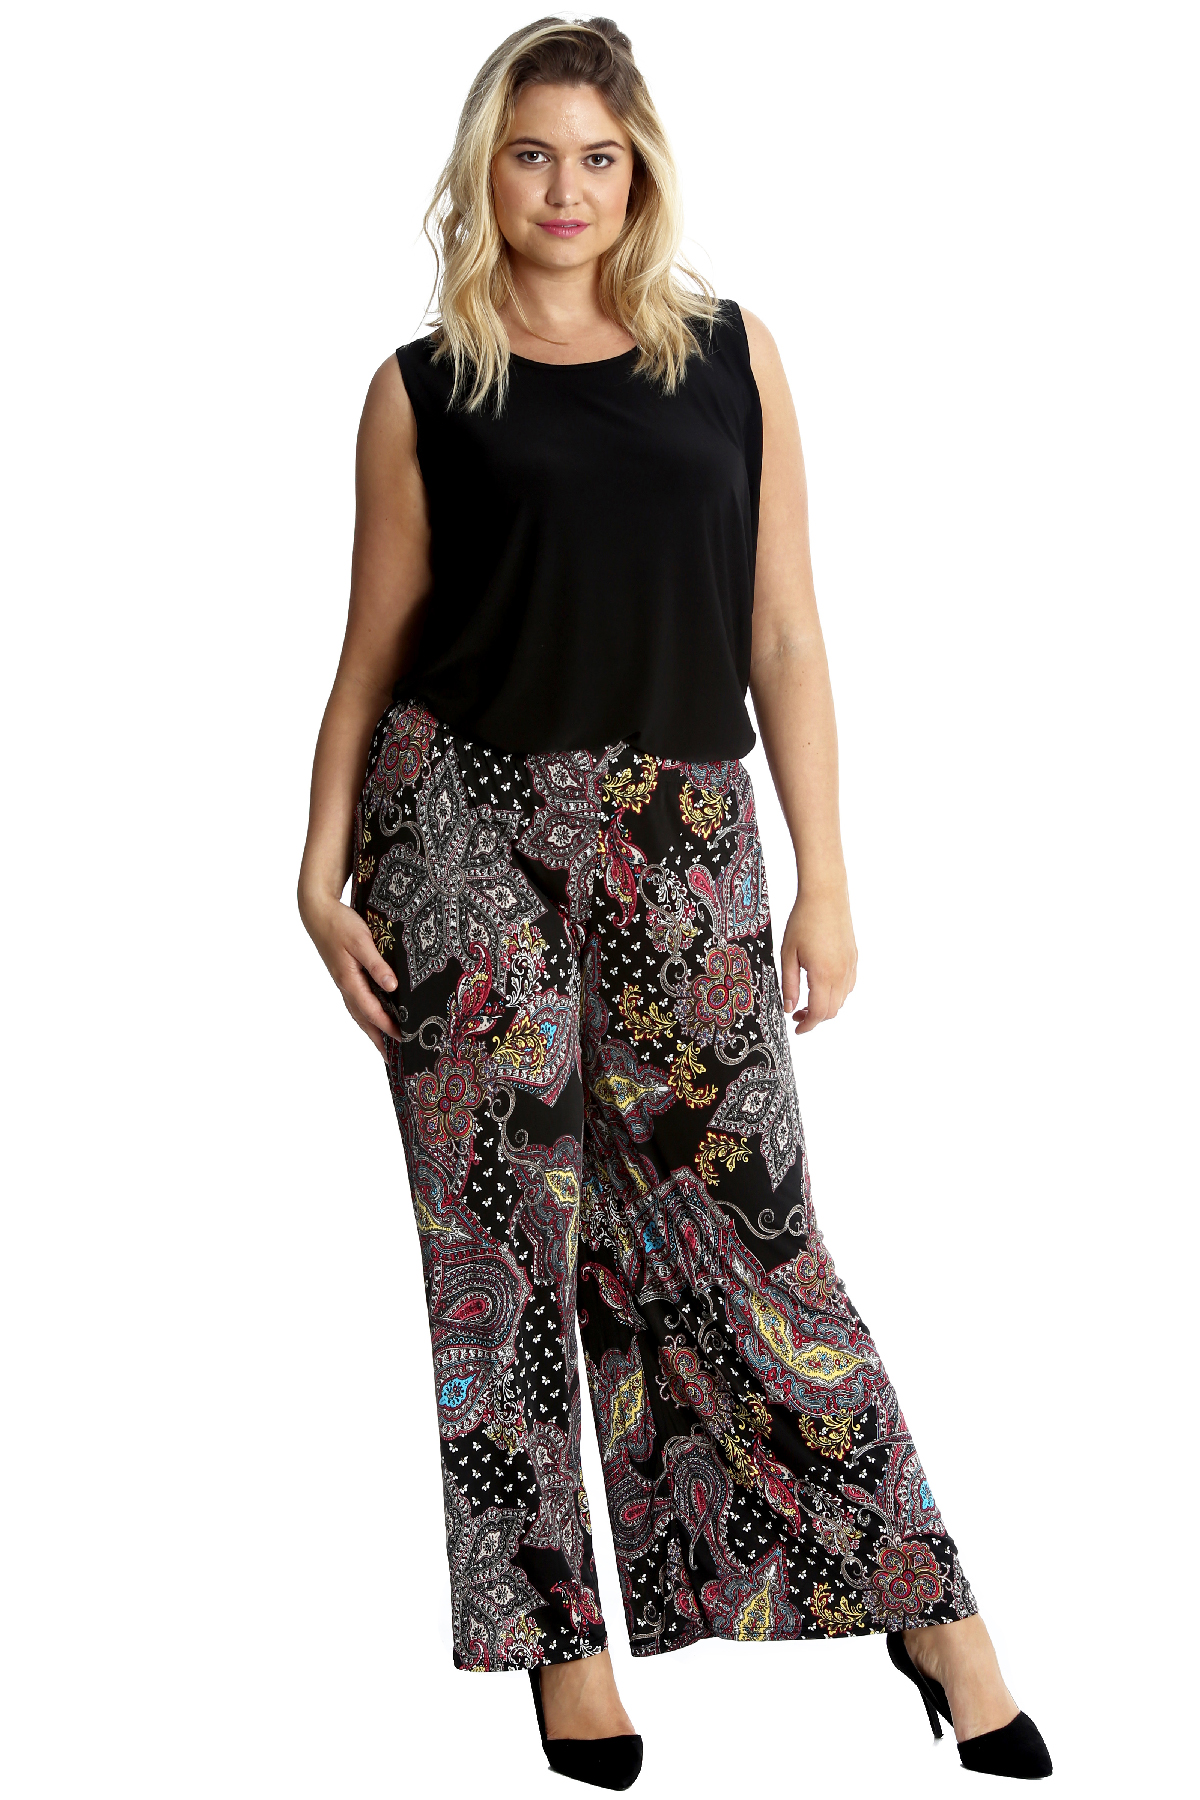 New Womens Plus Size Trousers Ladies Paisley Print Palazzo Pants Flared Wide Leg